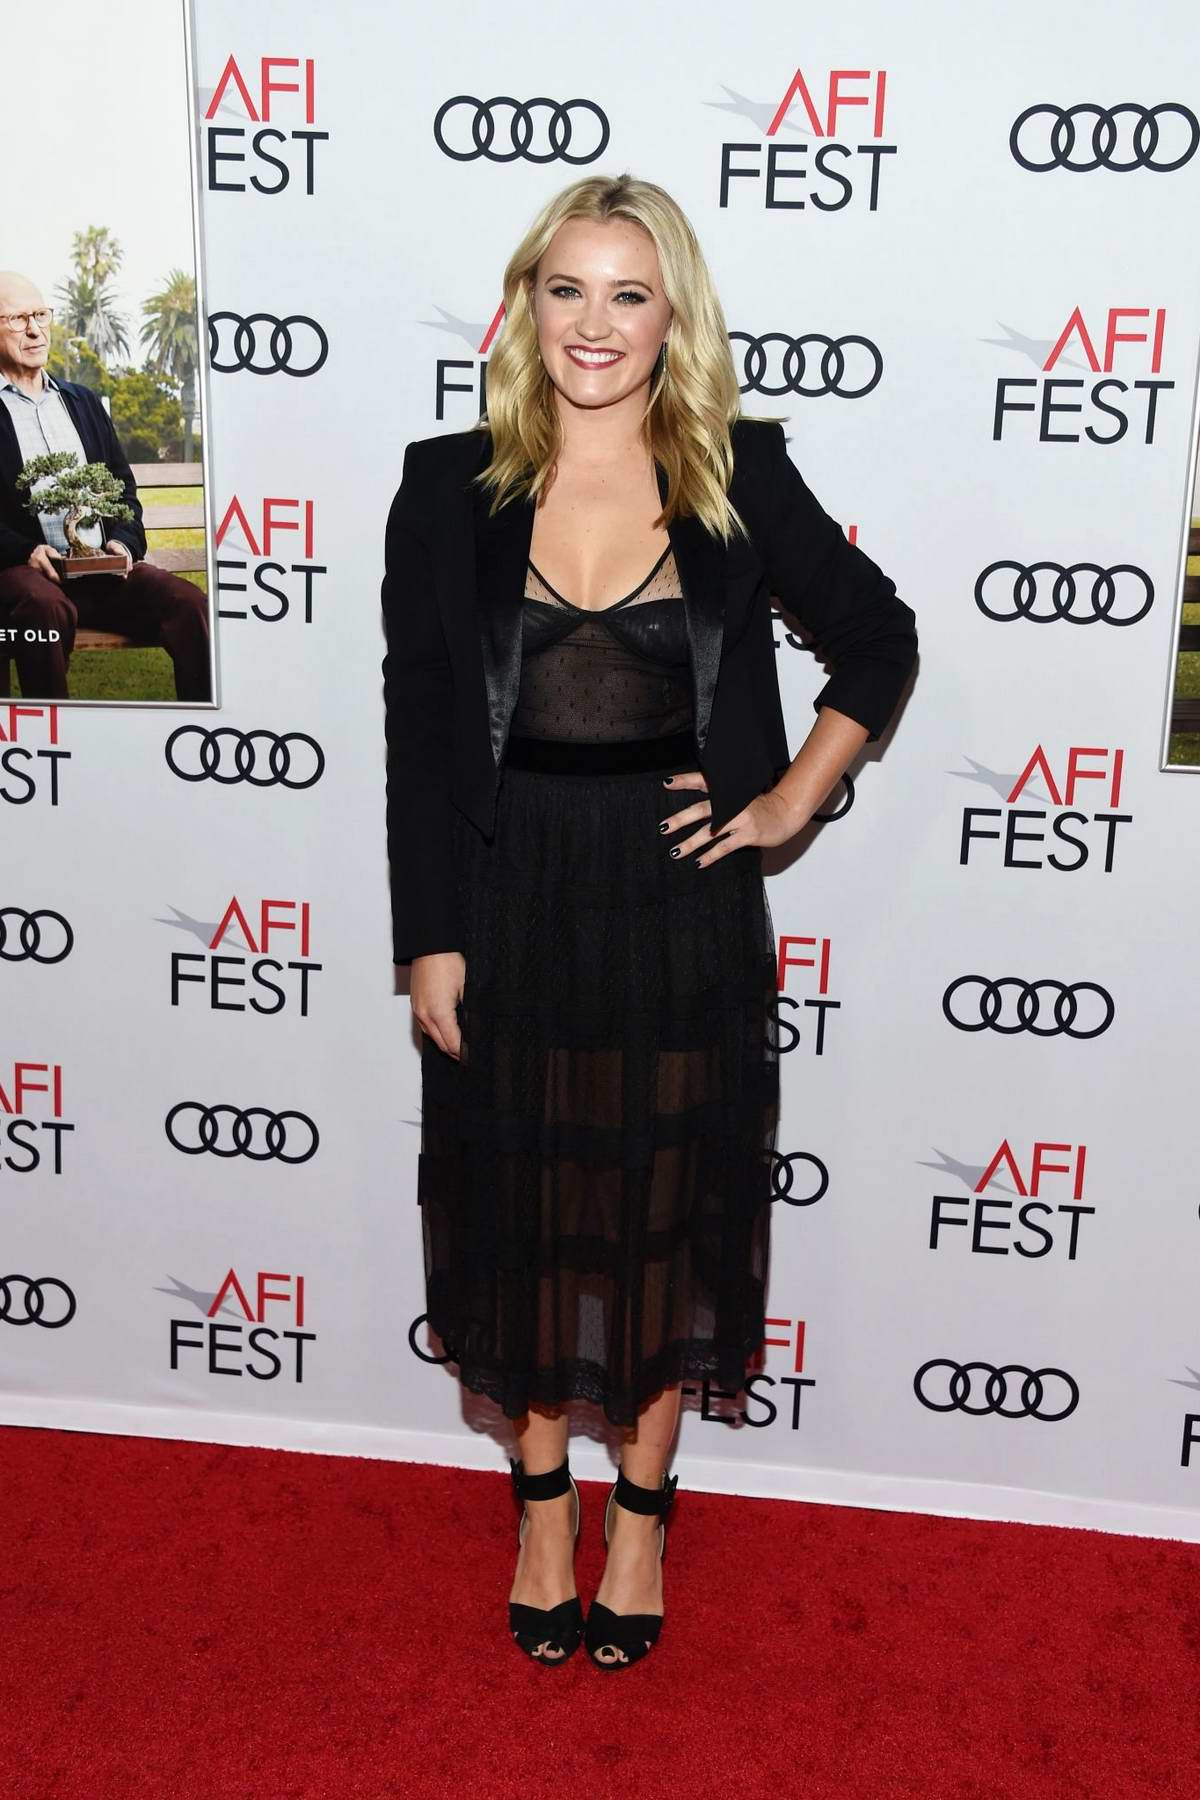 Emily Osment attends The Gala Screening of 'The Kominsky Method' at AFI FEST 2018 in Hollywood, California